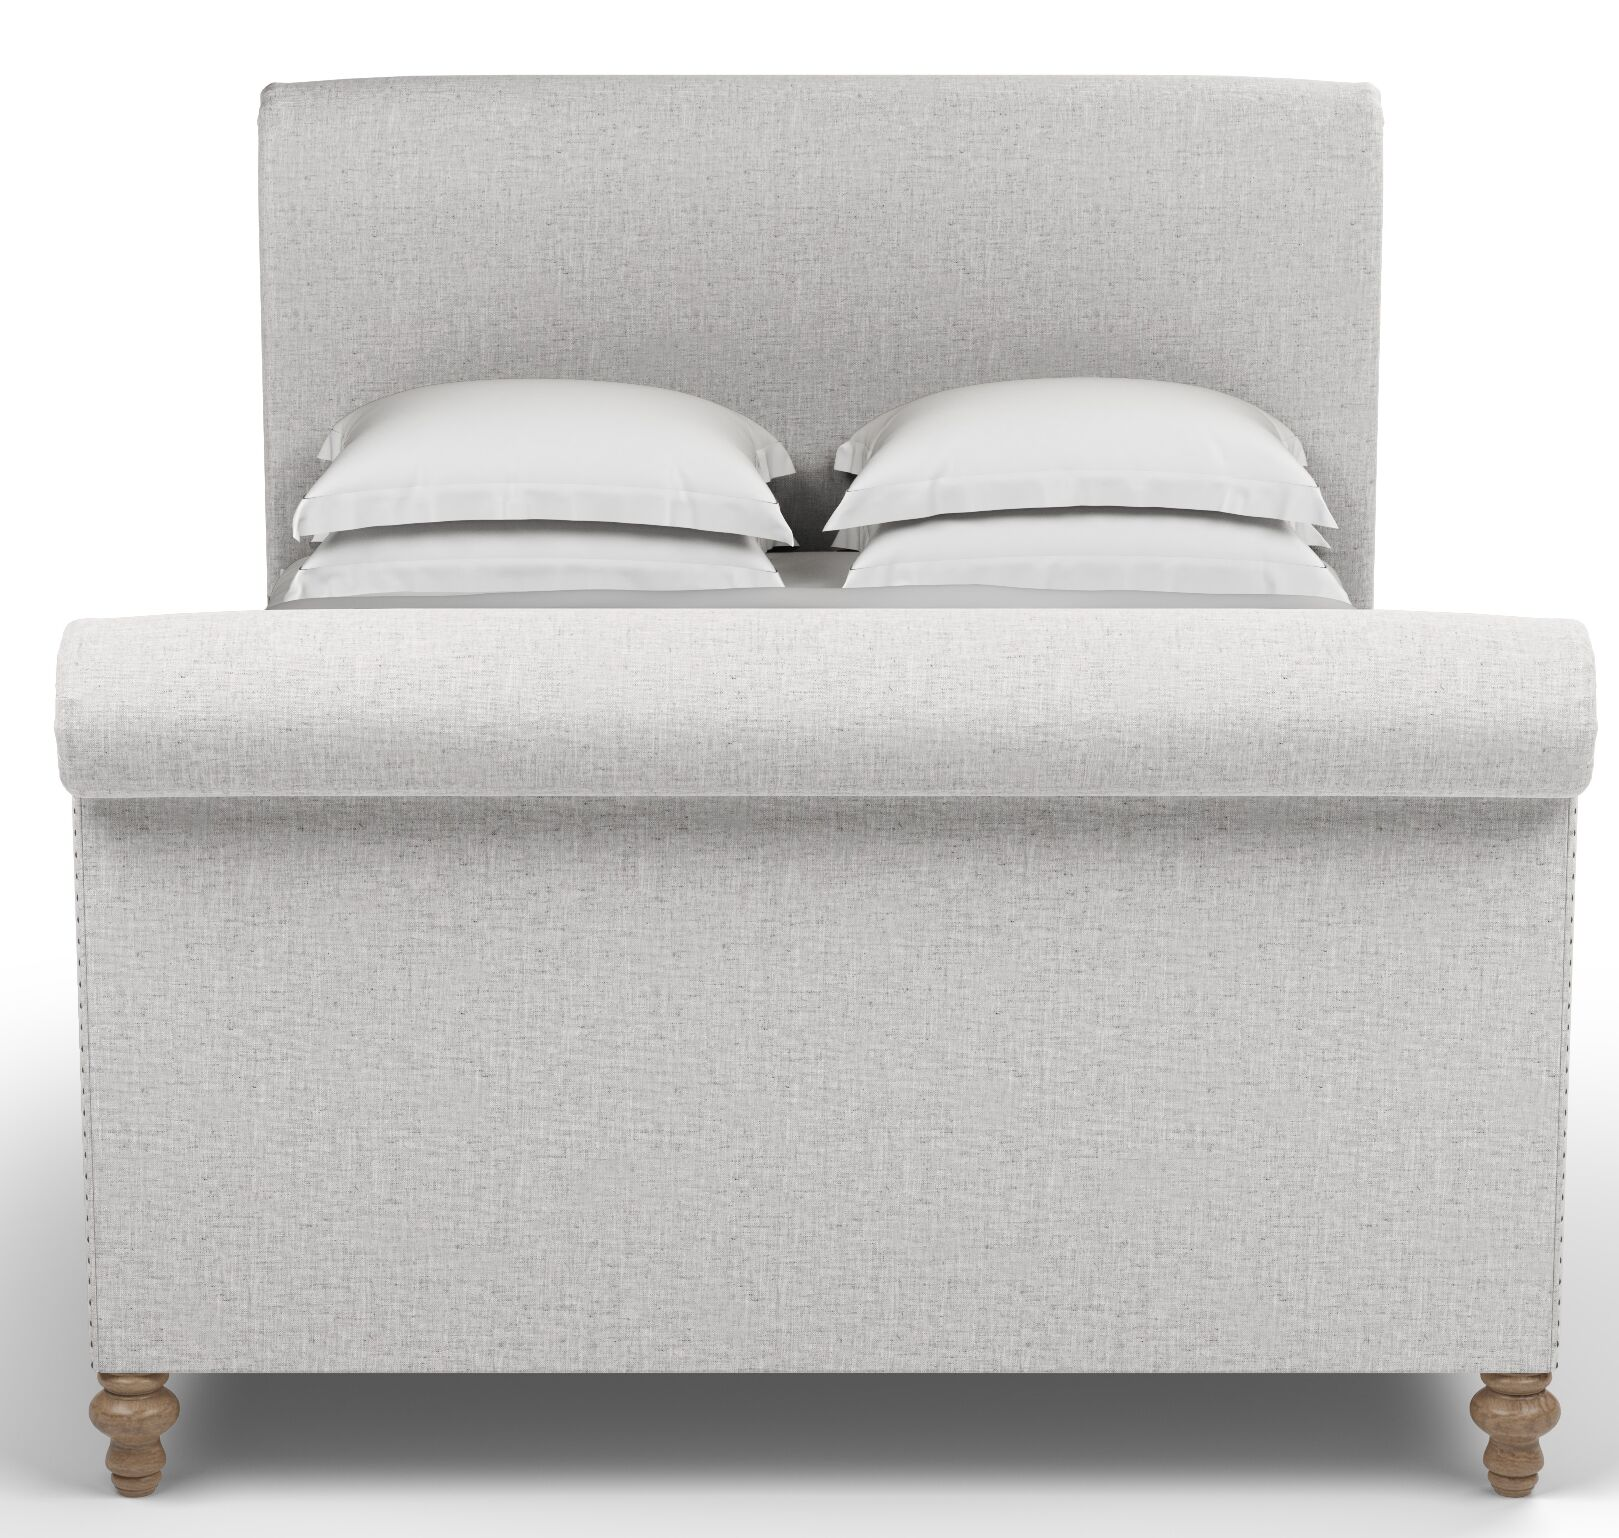 Audley Scroll Upholstered Sleigh Bed